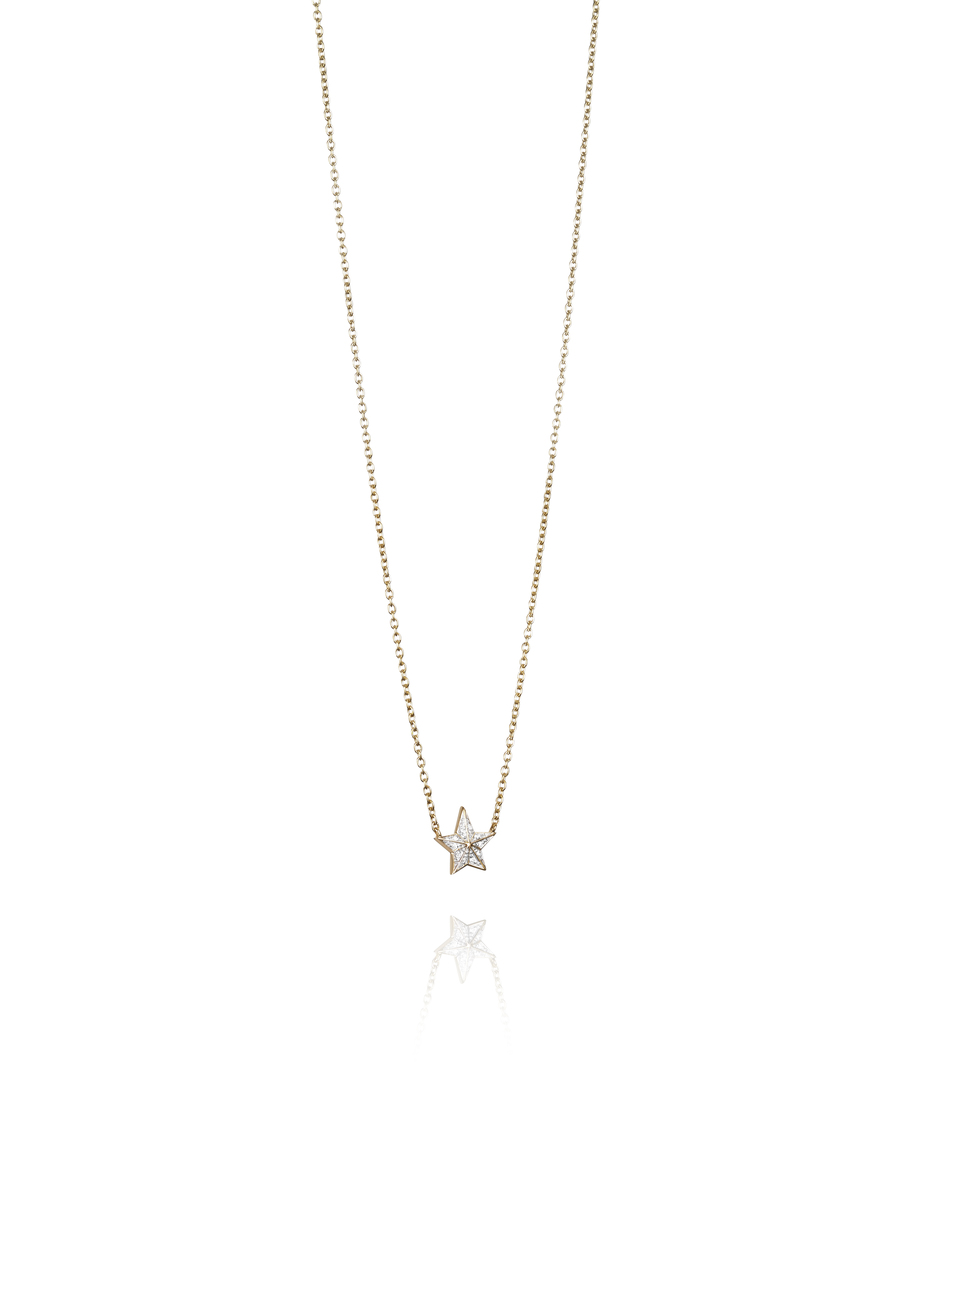 Catch A Falling Star Stars Necklace 10-101-01407(2)